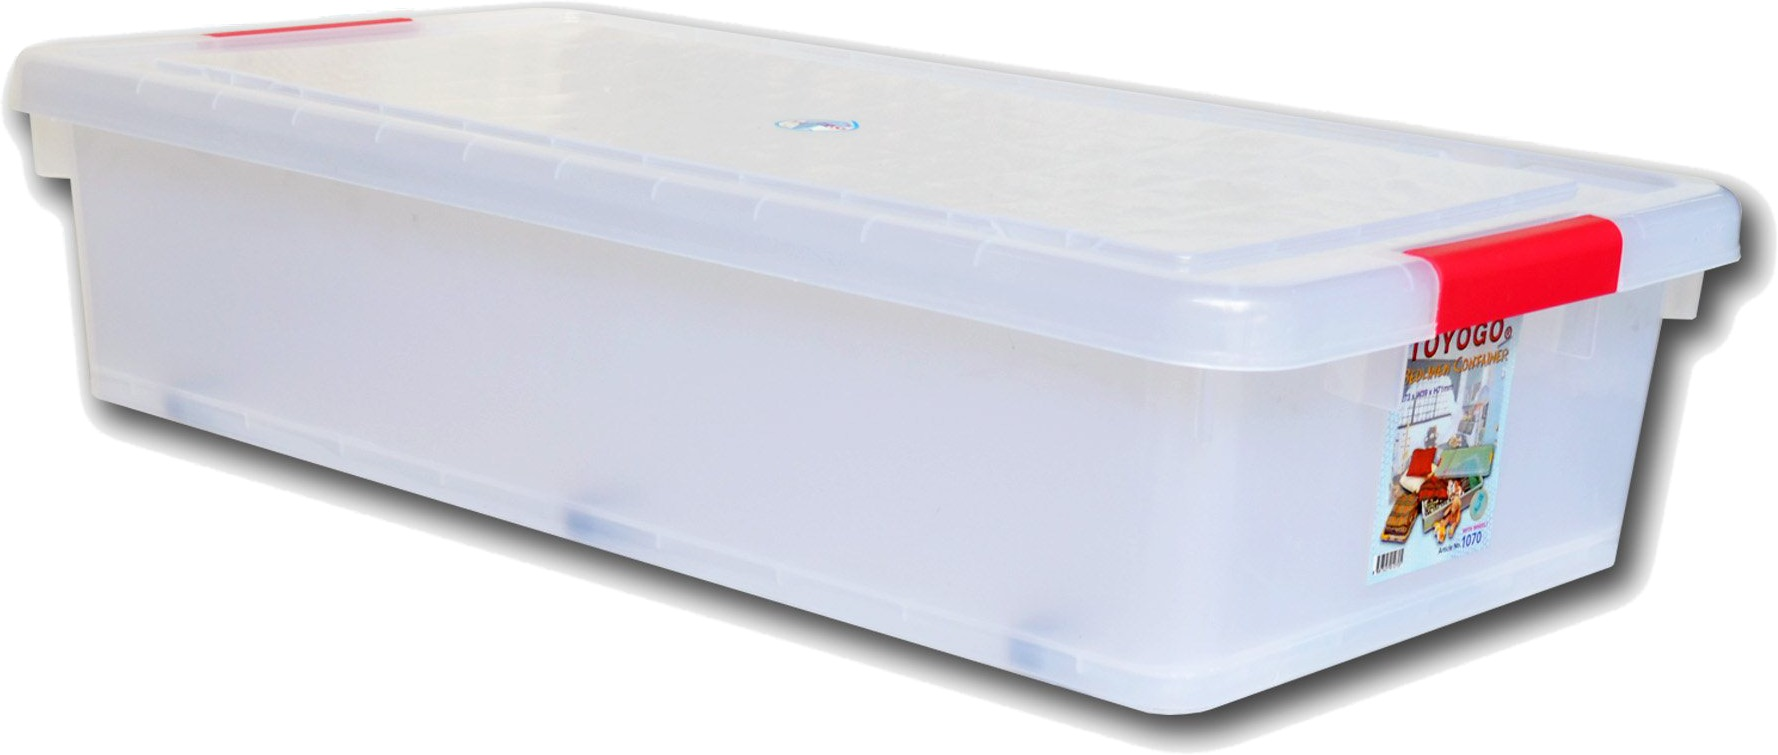 TOYOGO STORAGE BOX WITH COVER 28L  1070